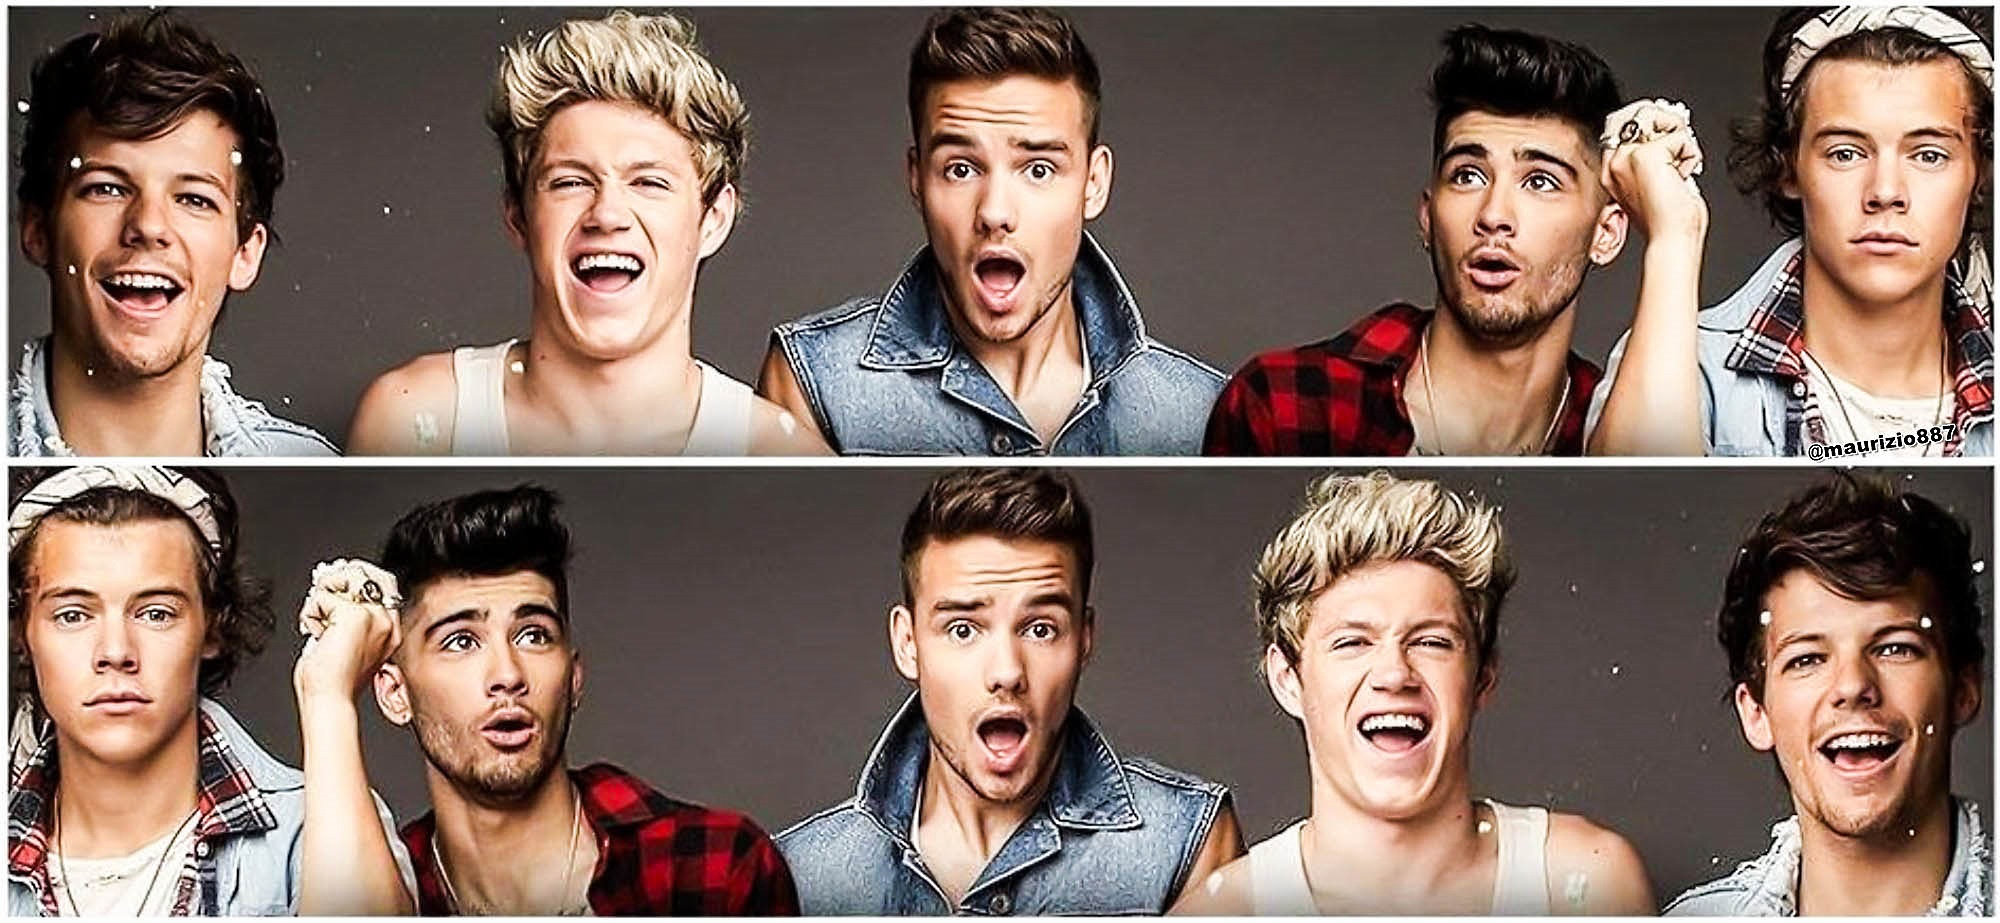 One Direction Photoshoot Tumblr 2013 one direction 2013 - O...